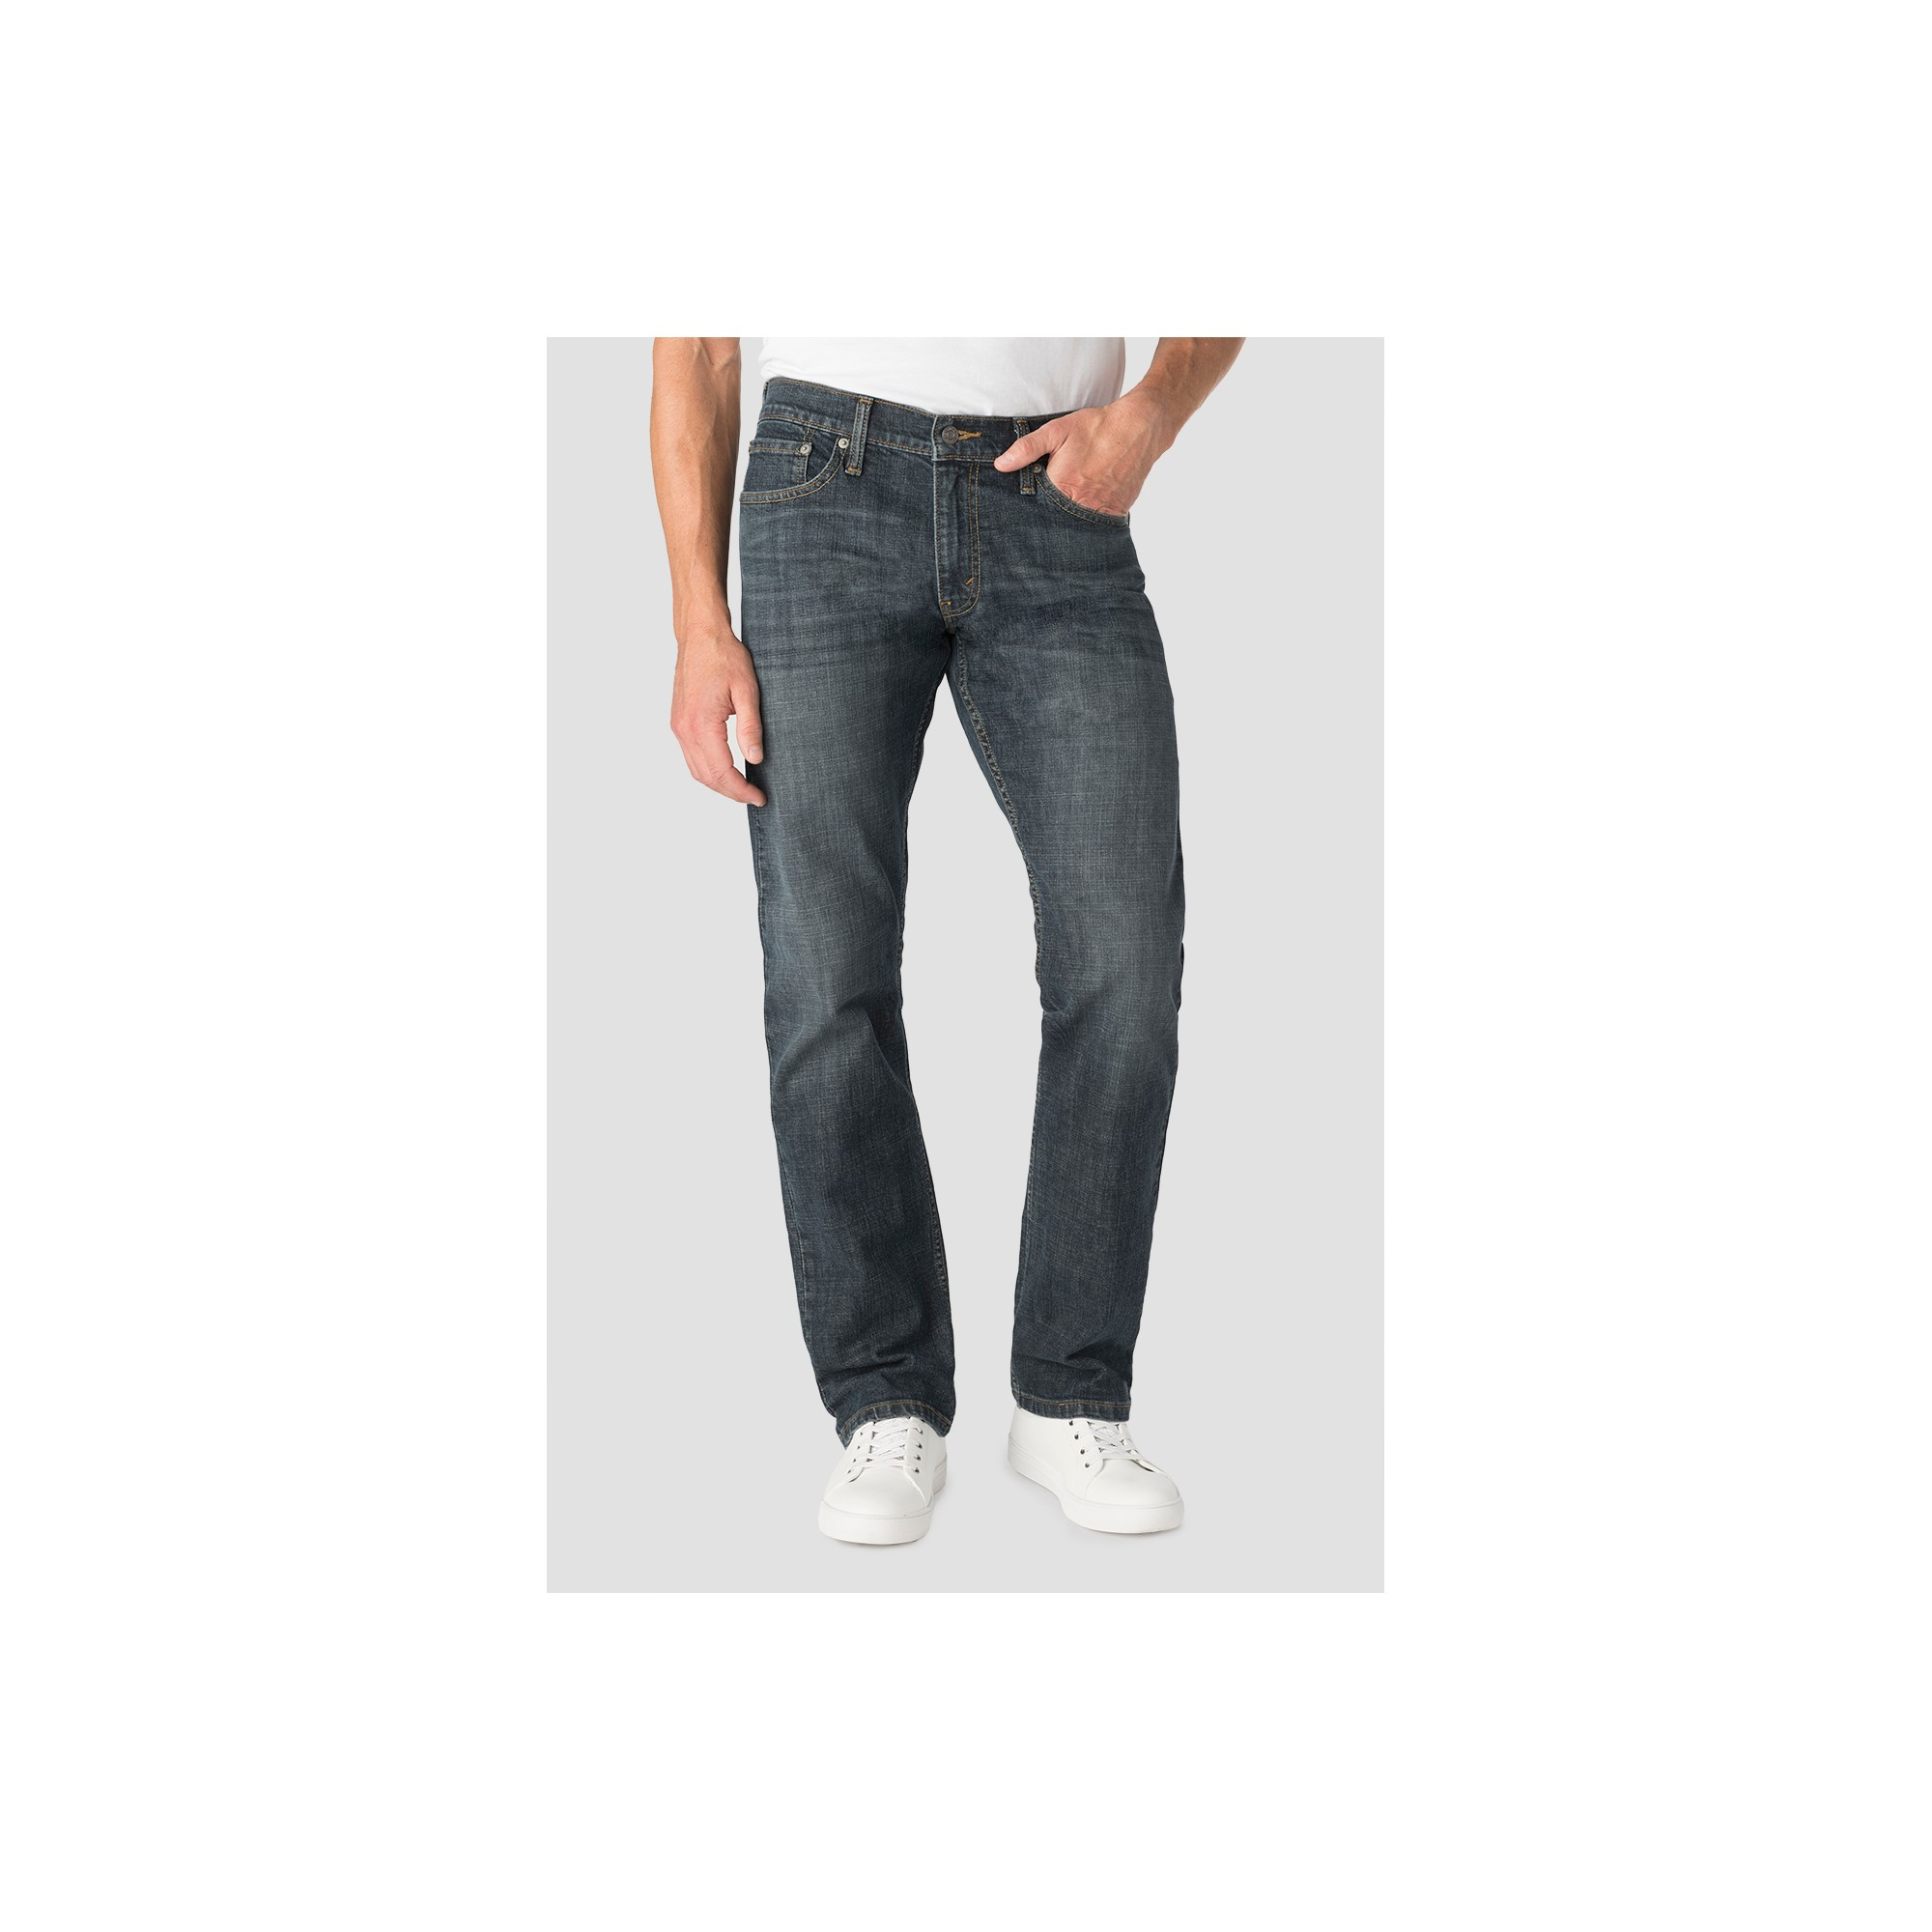 Denizen from Levi's Men's 218 Straight Fit Jeans - Grizzly 34x34